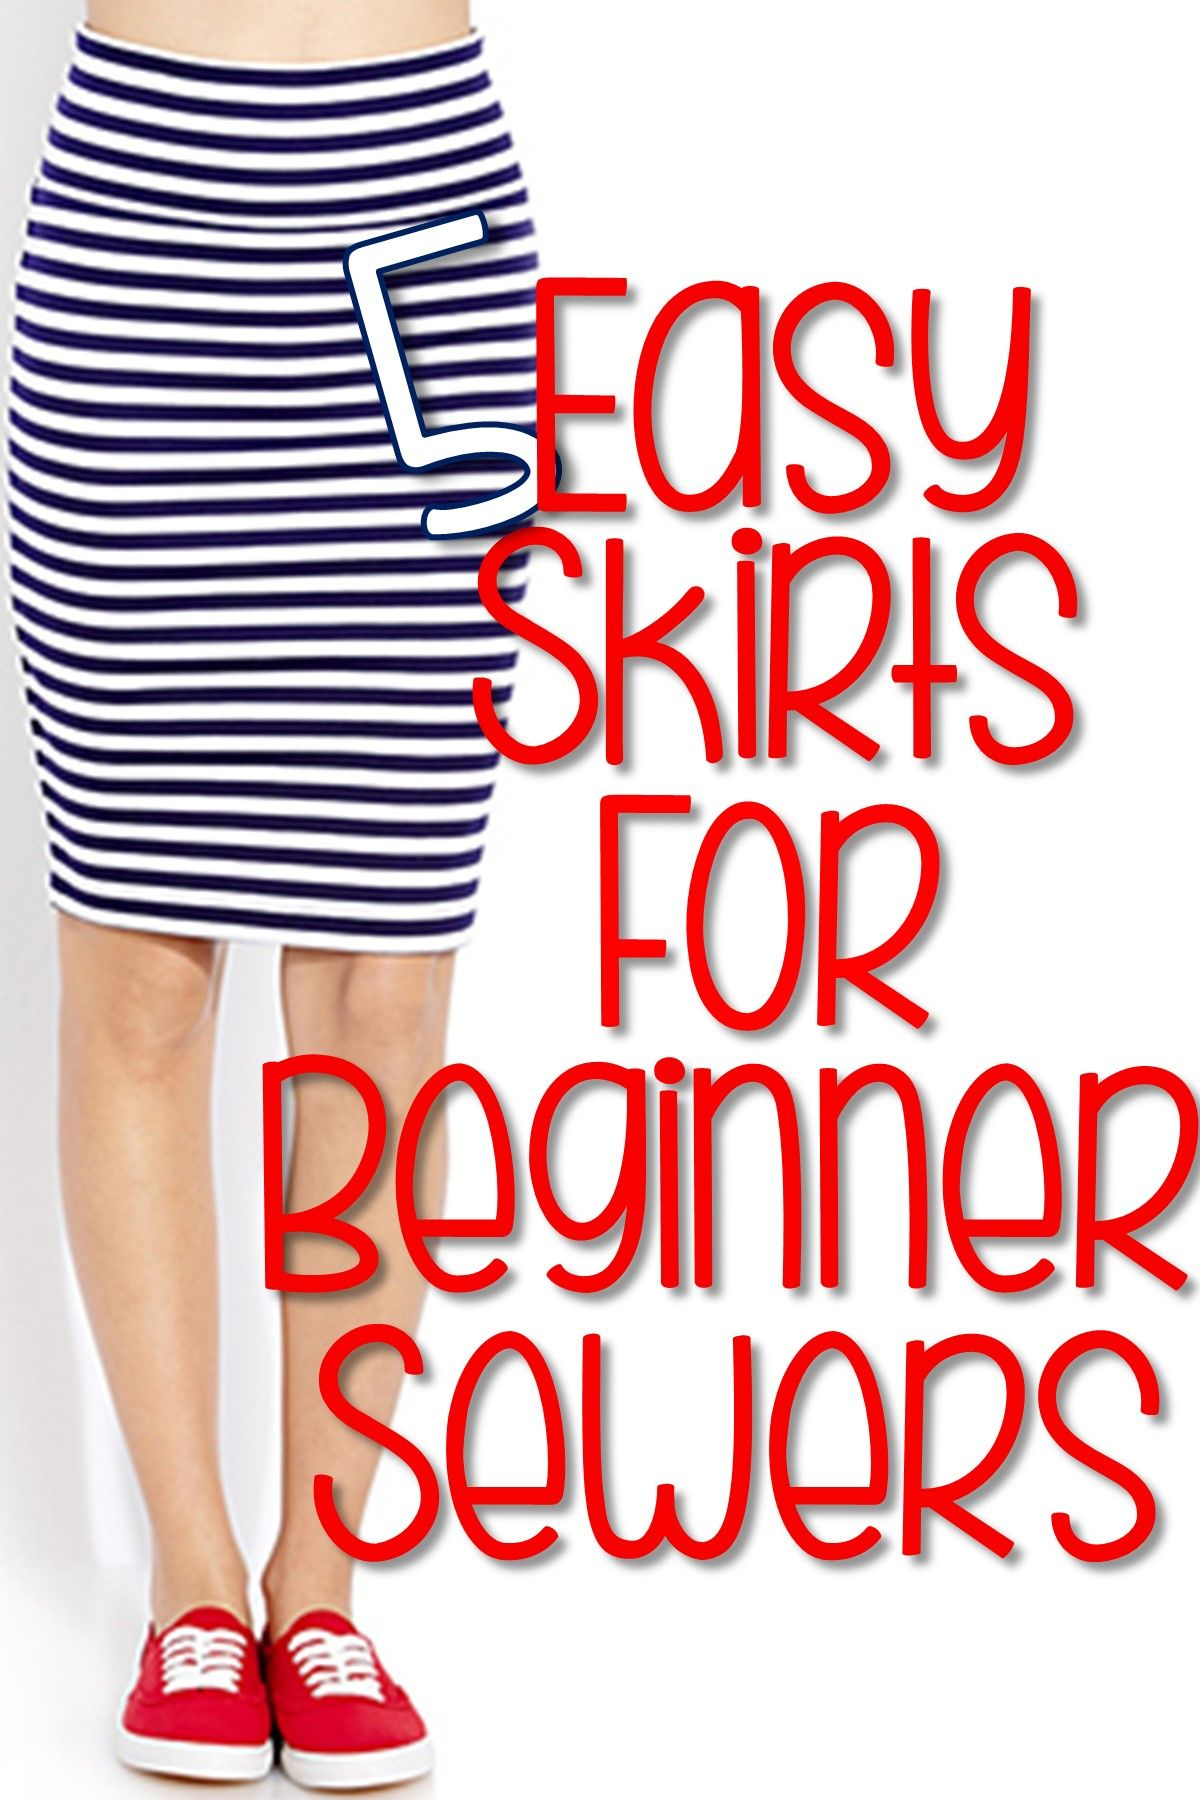 5 Easy Skirts for Beginner Sewers | Cute Ideas | Pinterest ...